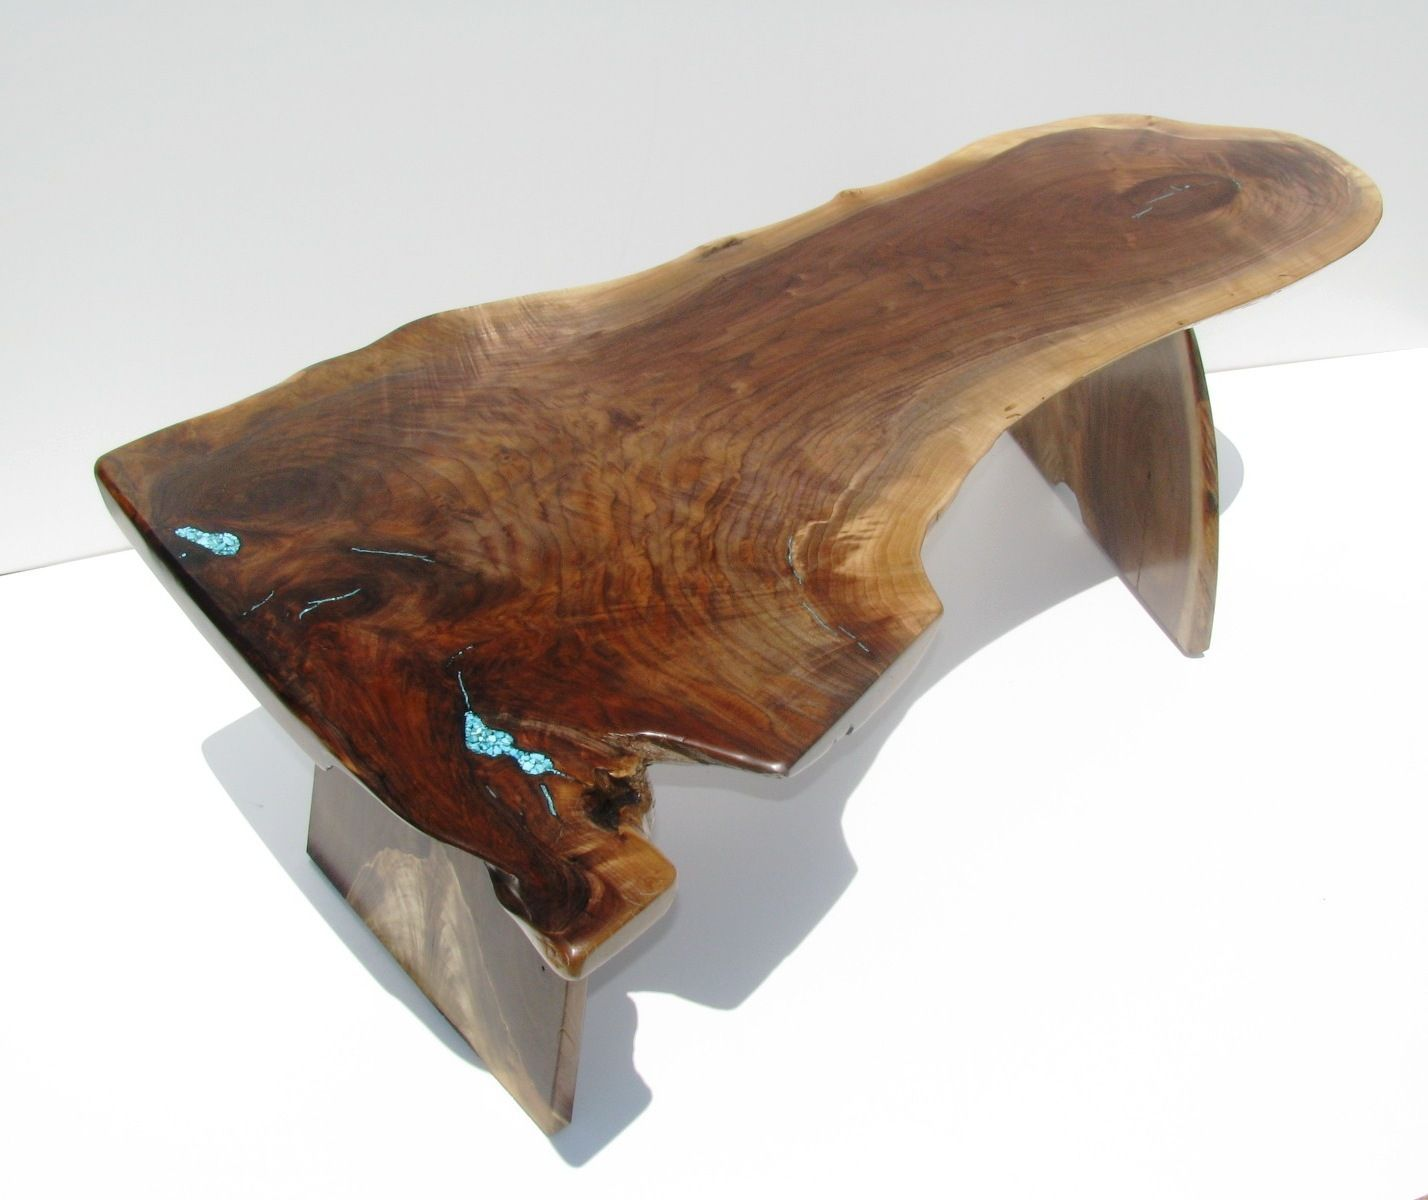 Hand Made Highly Figured Walnut Stump Coffee Table By Haymore Enterprises Inc